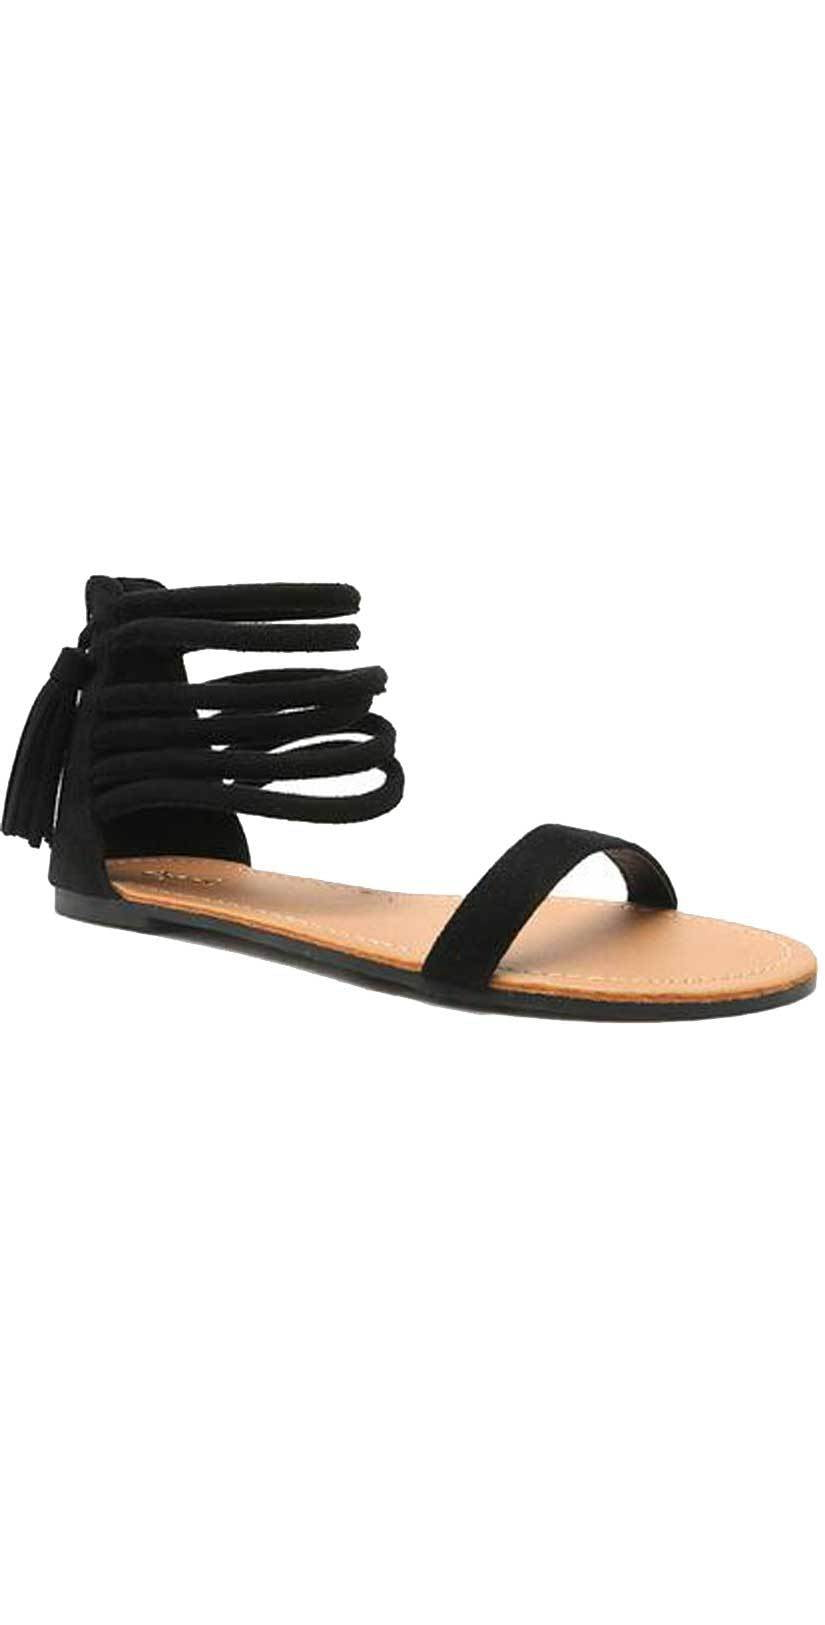 Qupid Shoes Archer Sandal In Black ARCHER-166 Black